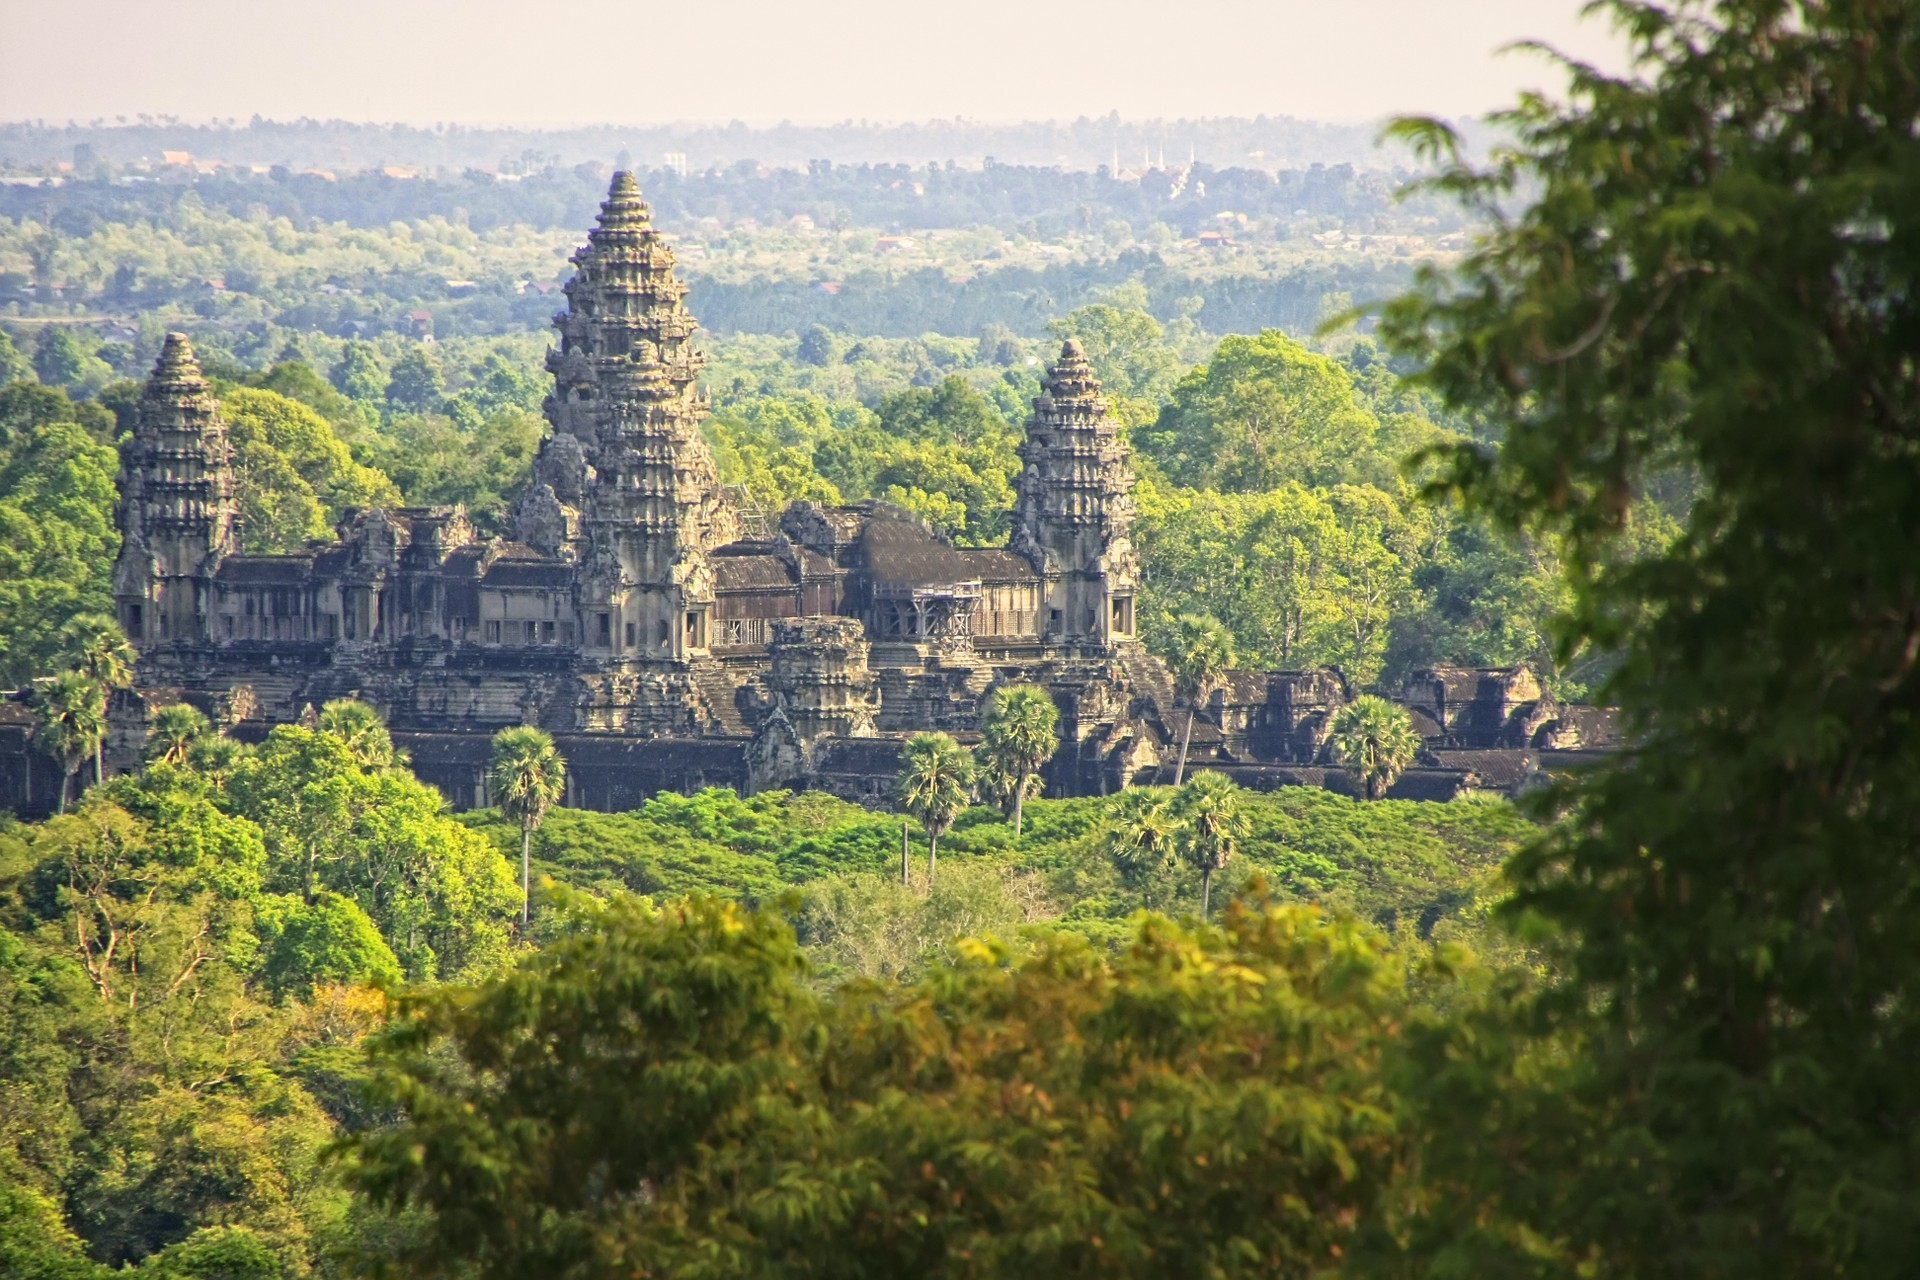 Angkor Wat in the forests of Cambodia